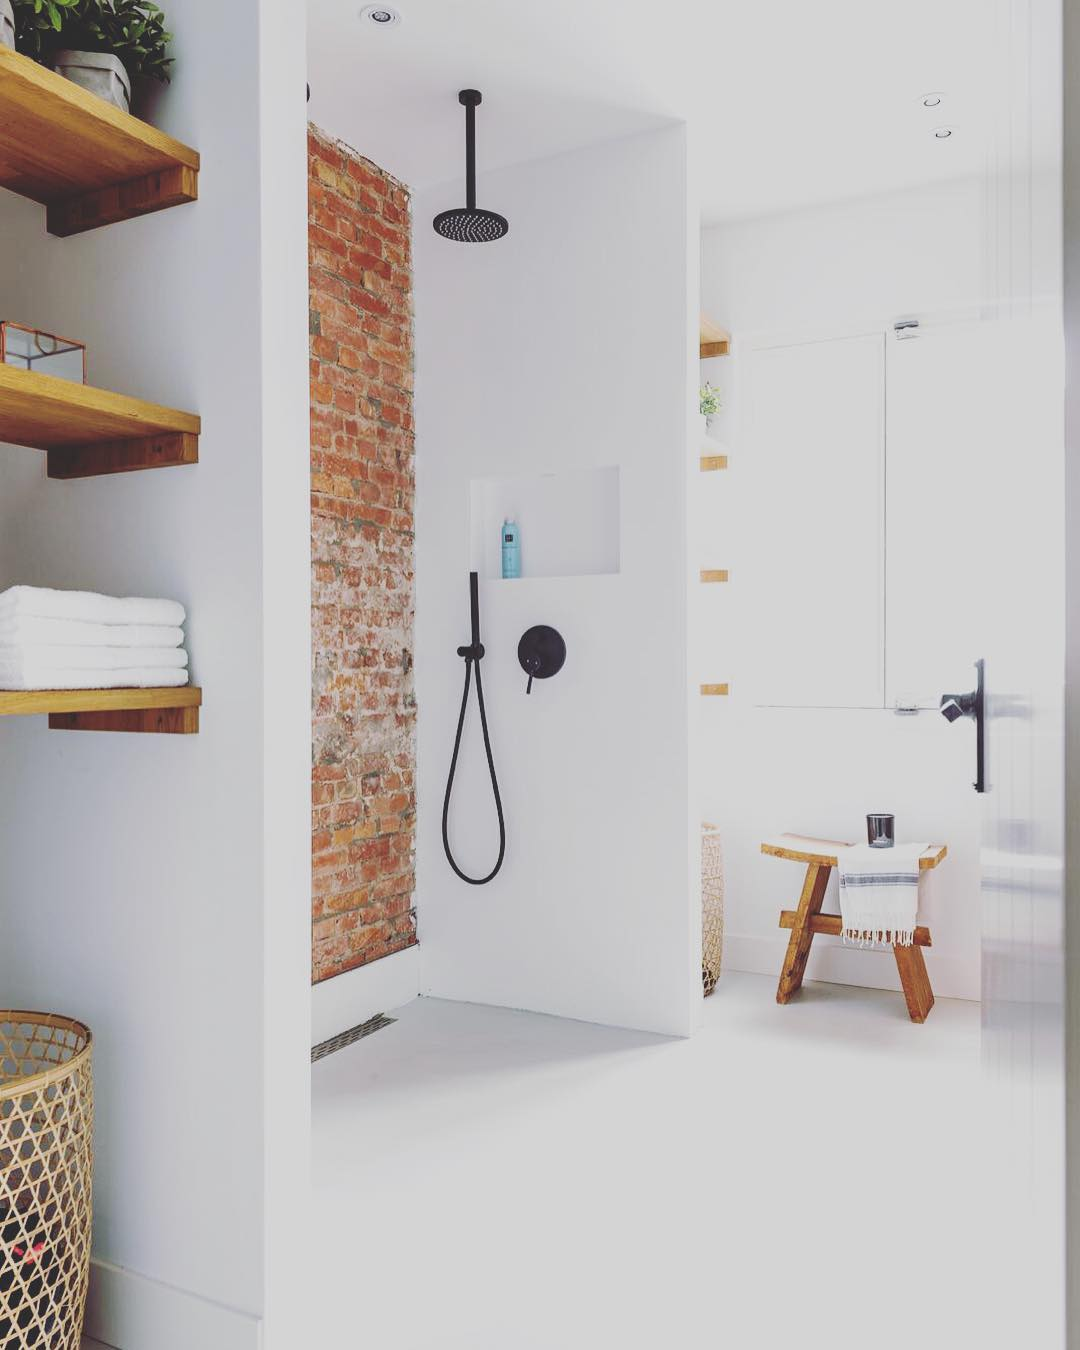 127 Instagram Interieur inspiratie top 5